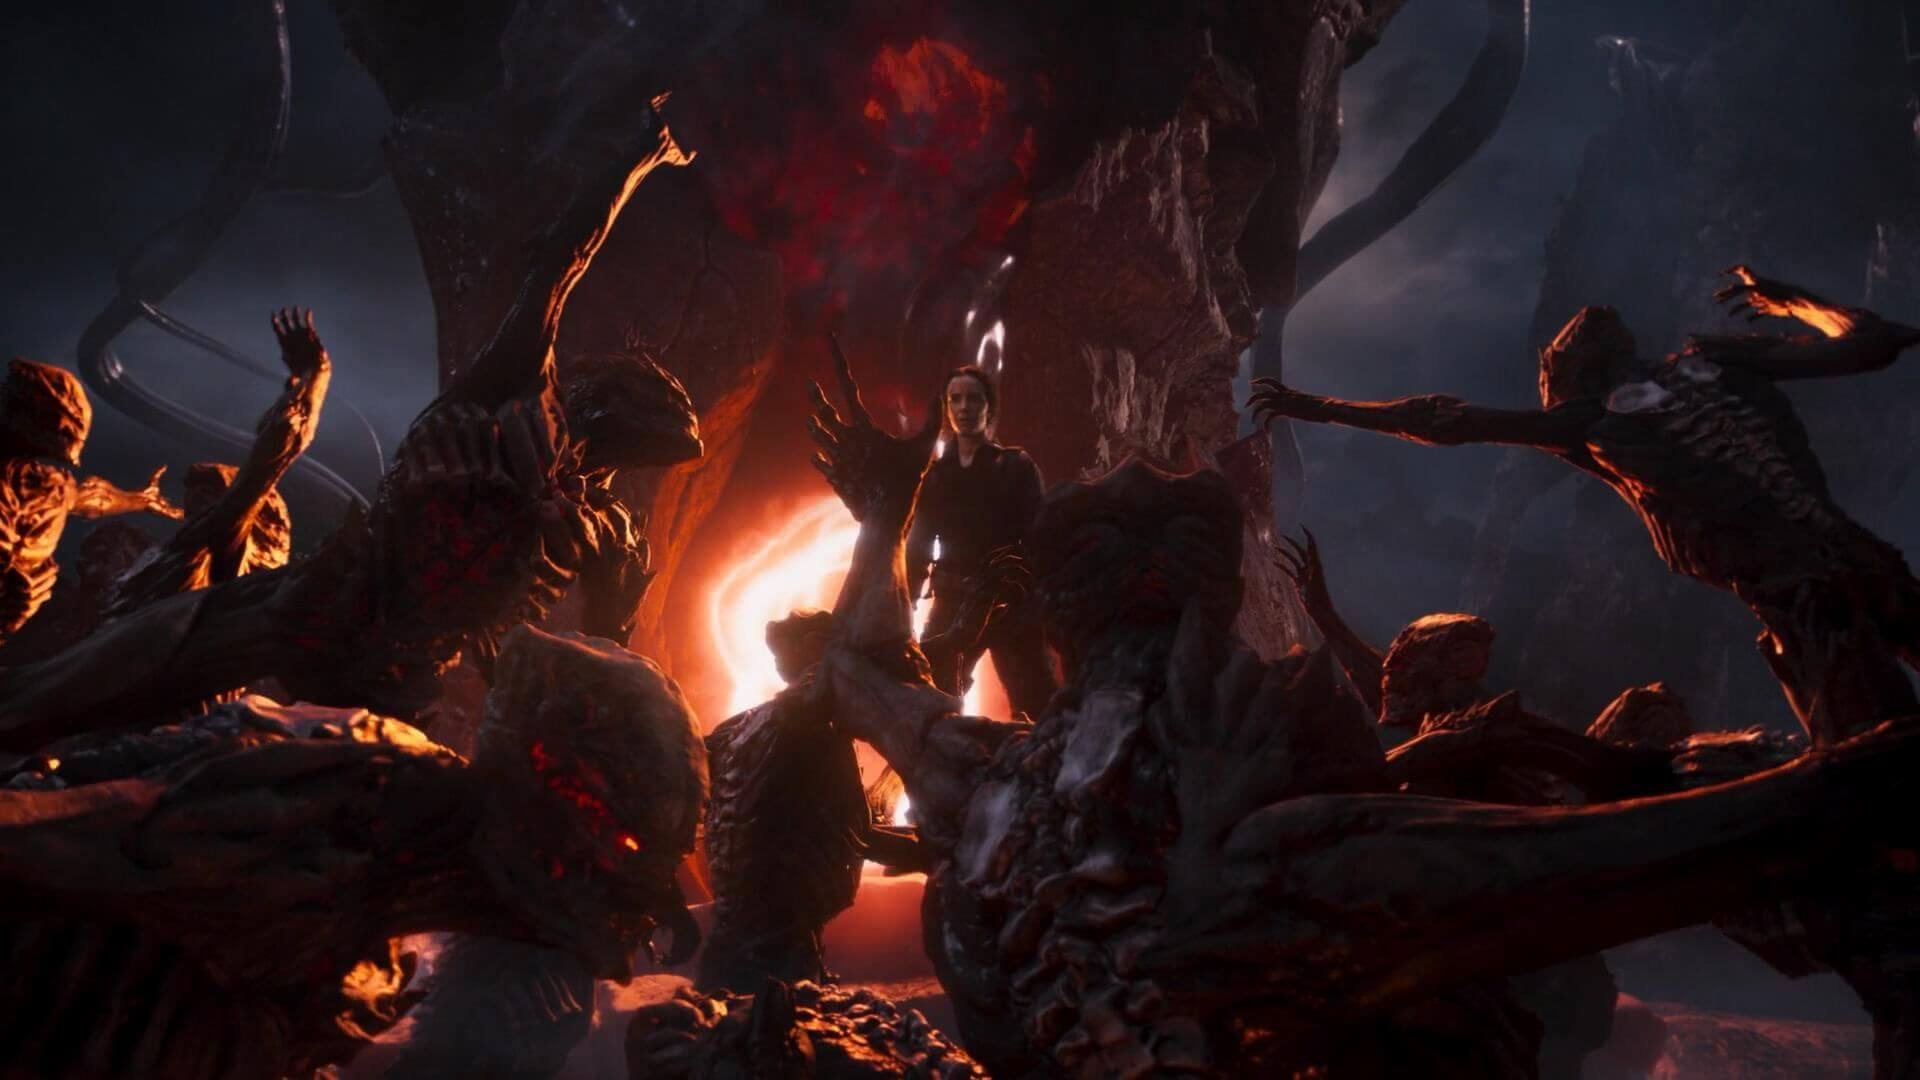 'Doom: Annihilation' Review: Not Even As Good As 2005